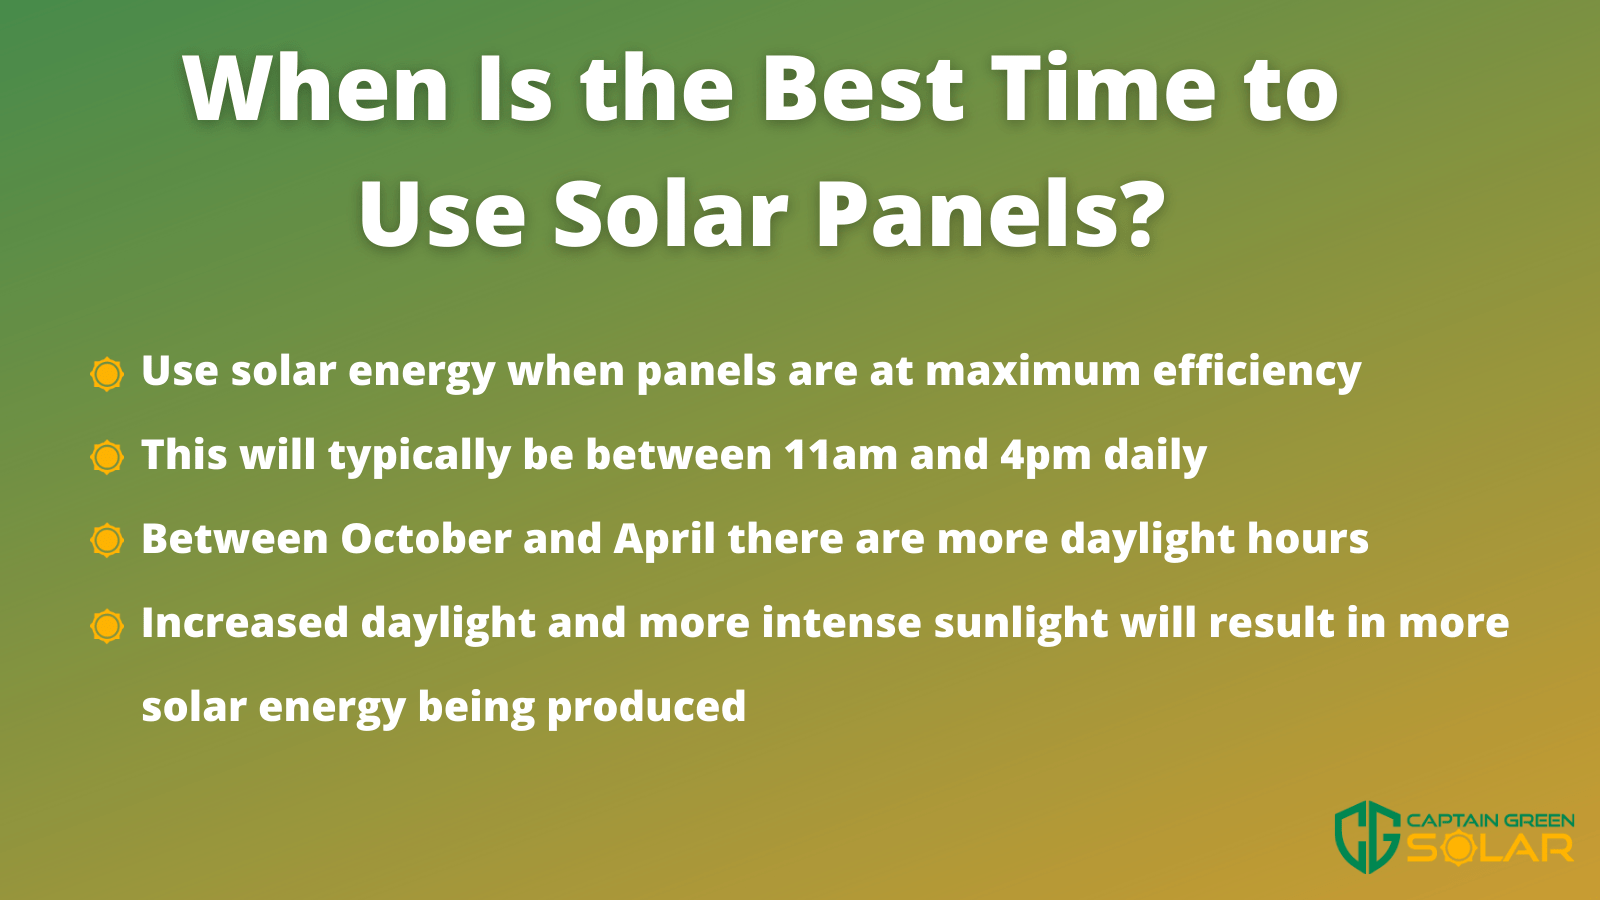 the best time to use solar panels infographic